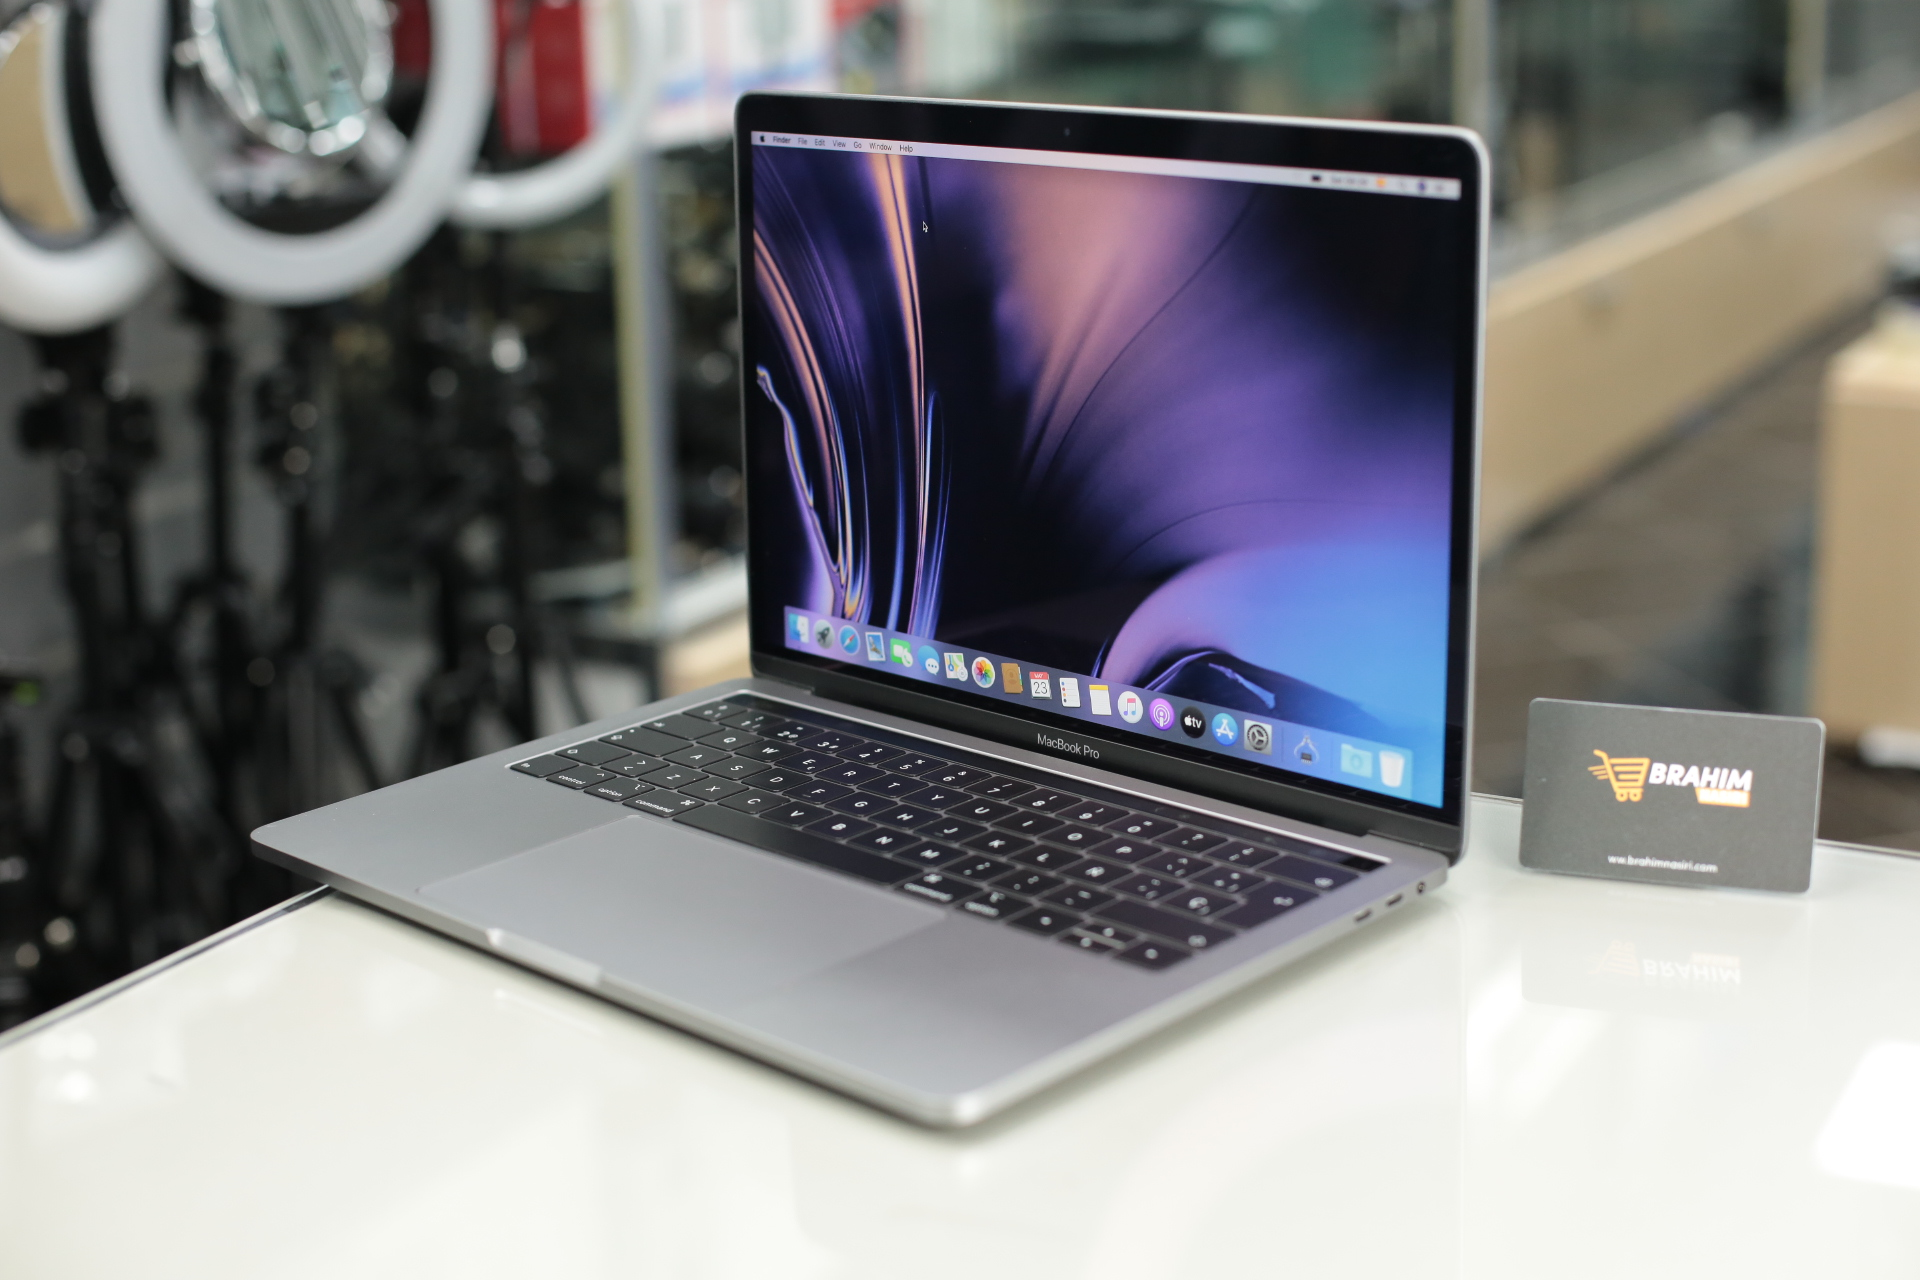 MacBook Pro With Touch Bar (Mid 2019, Space Gray)